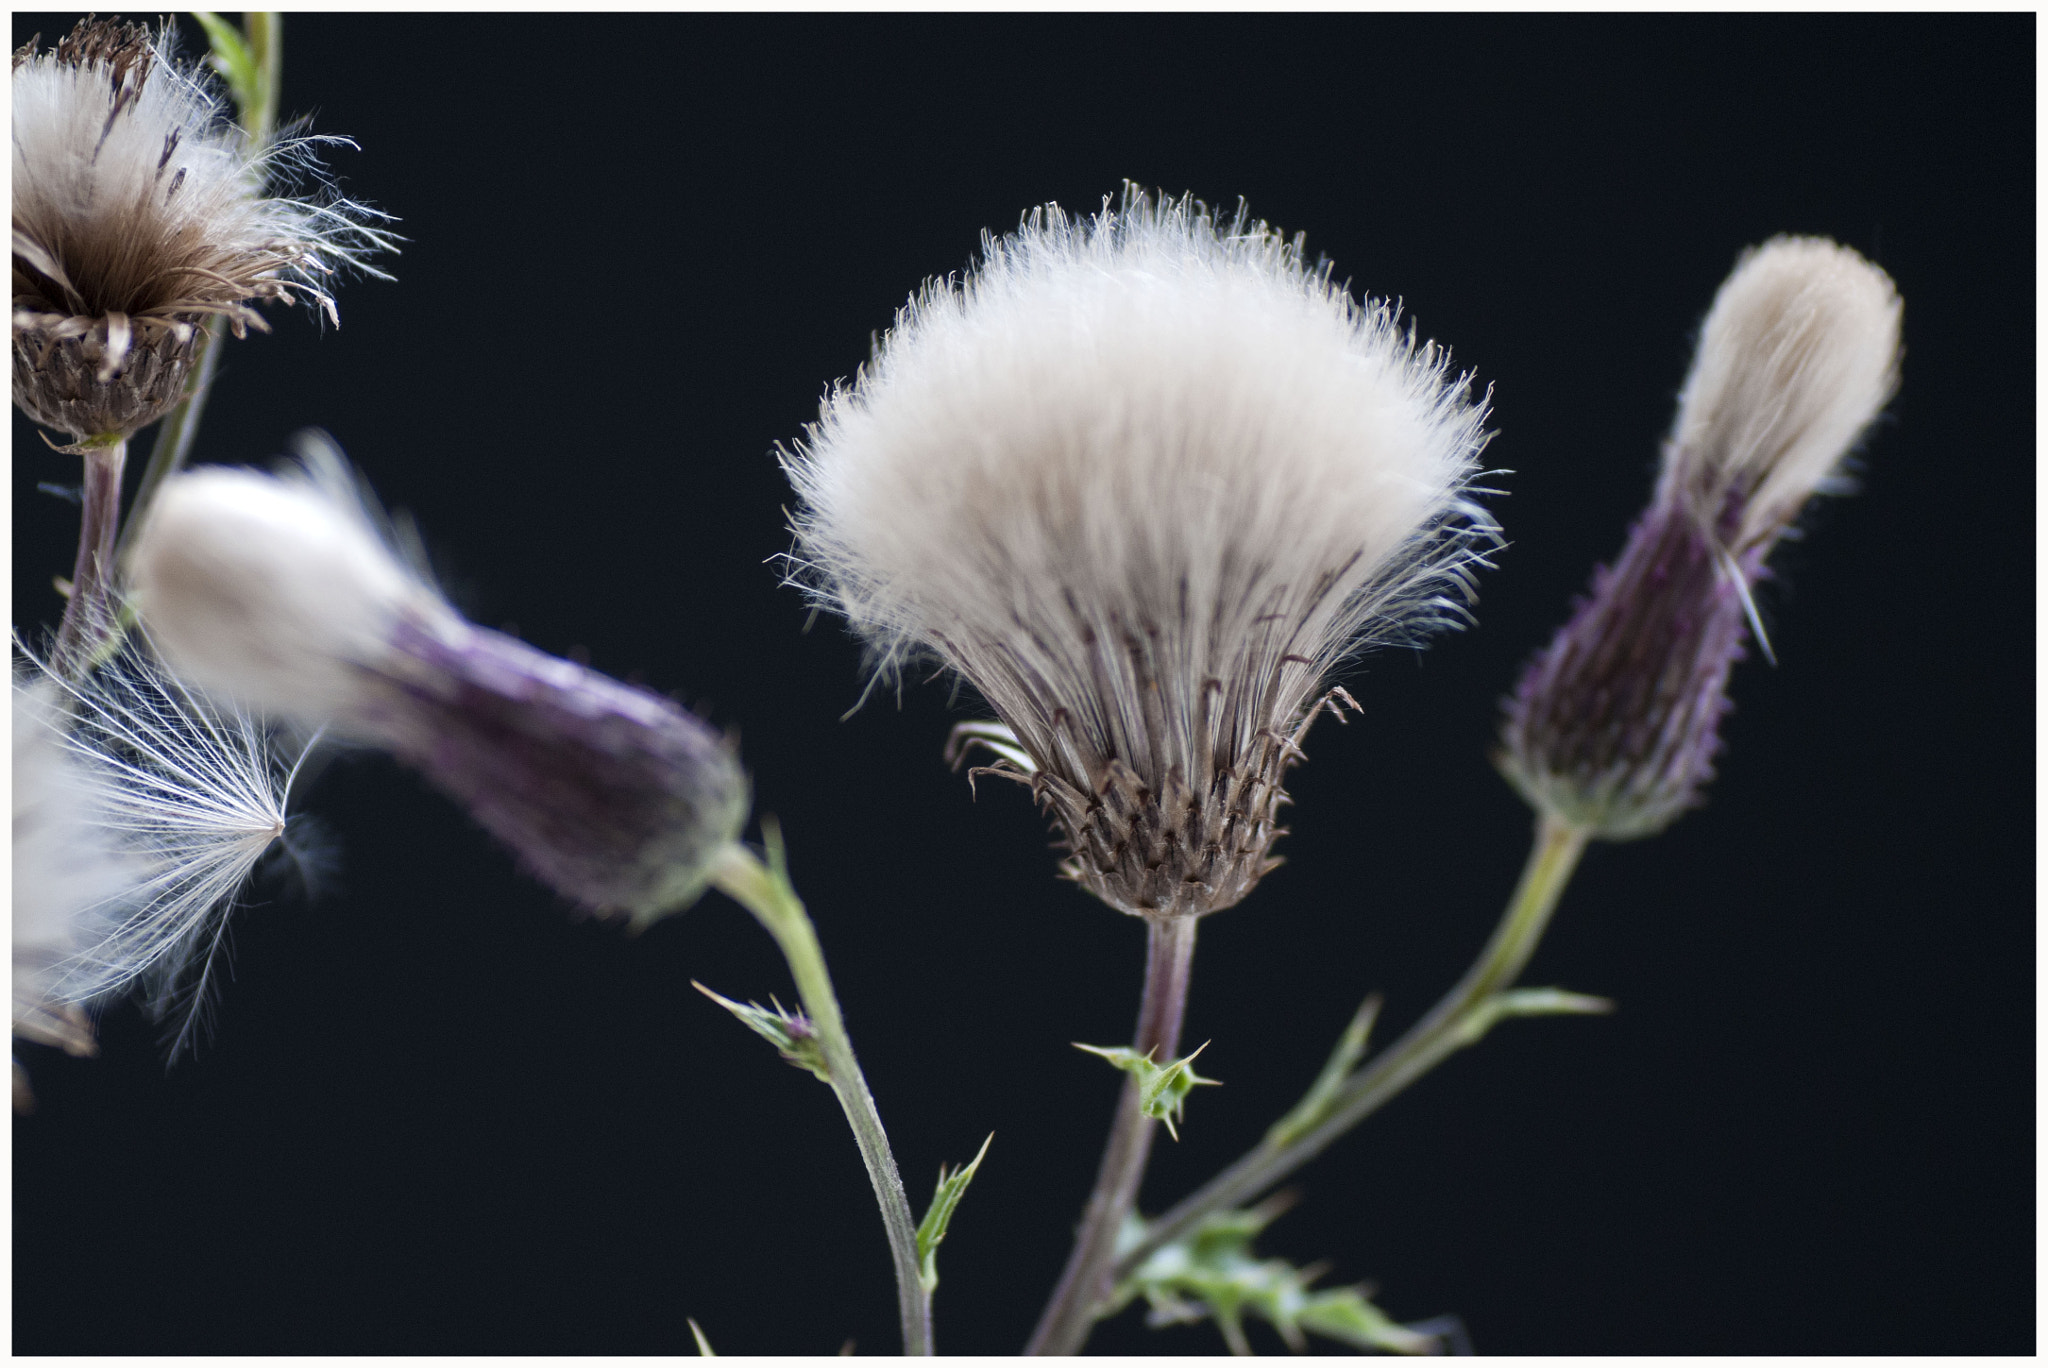 Photograph Thistle by Ruud Pothuizen on 500px